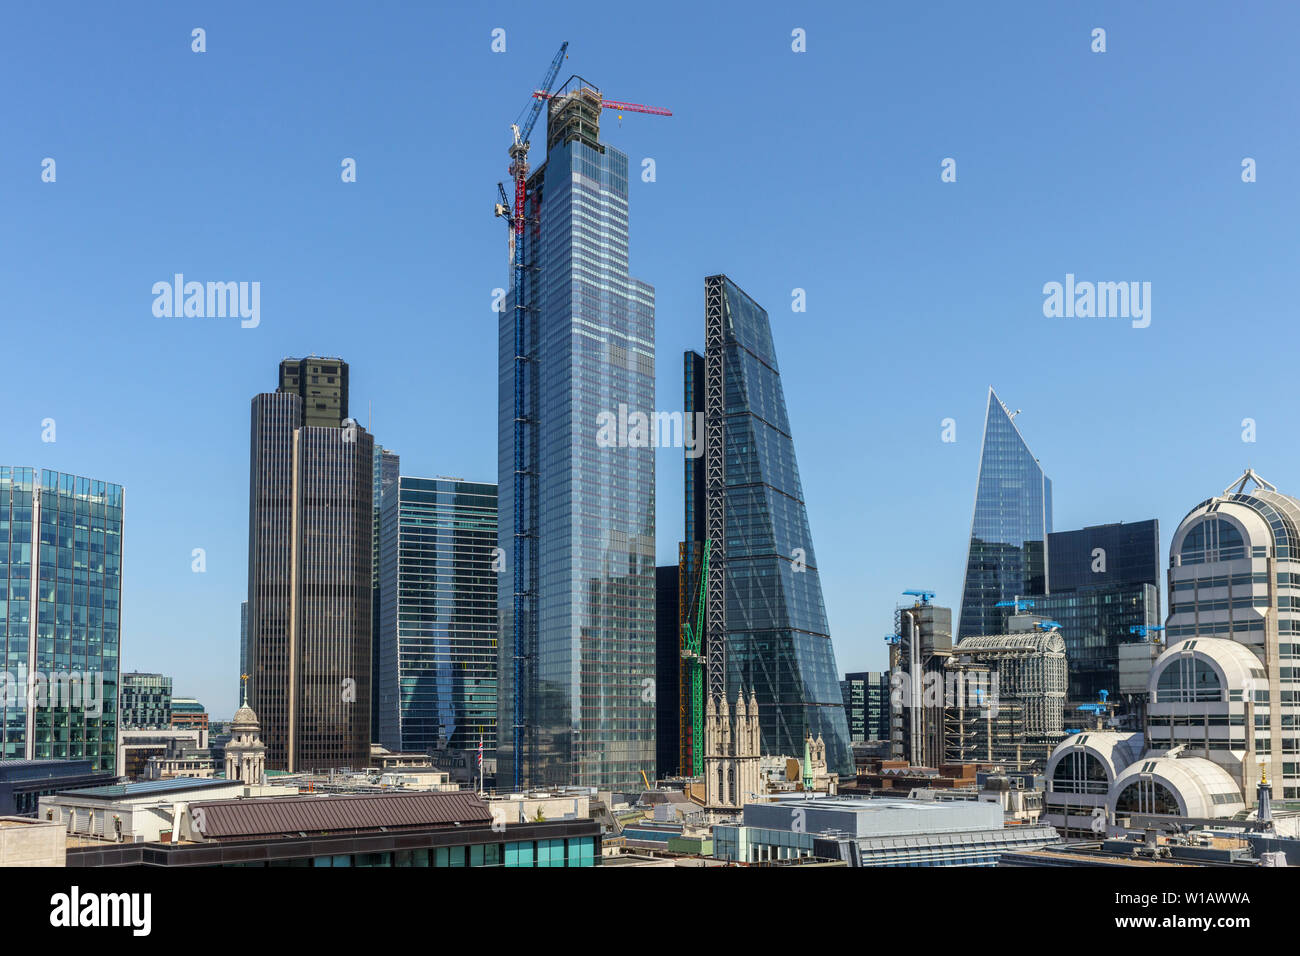 Skyscrapers, City of London financial district: Stock Exchange Tower, Tower 42, 100 & 22 Bishopsgate, Cheesegrater, Scalpel, 20 Gracehurch Street - Stock Image